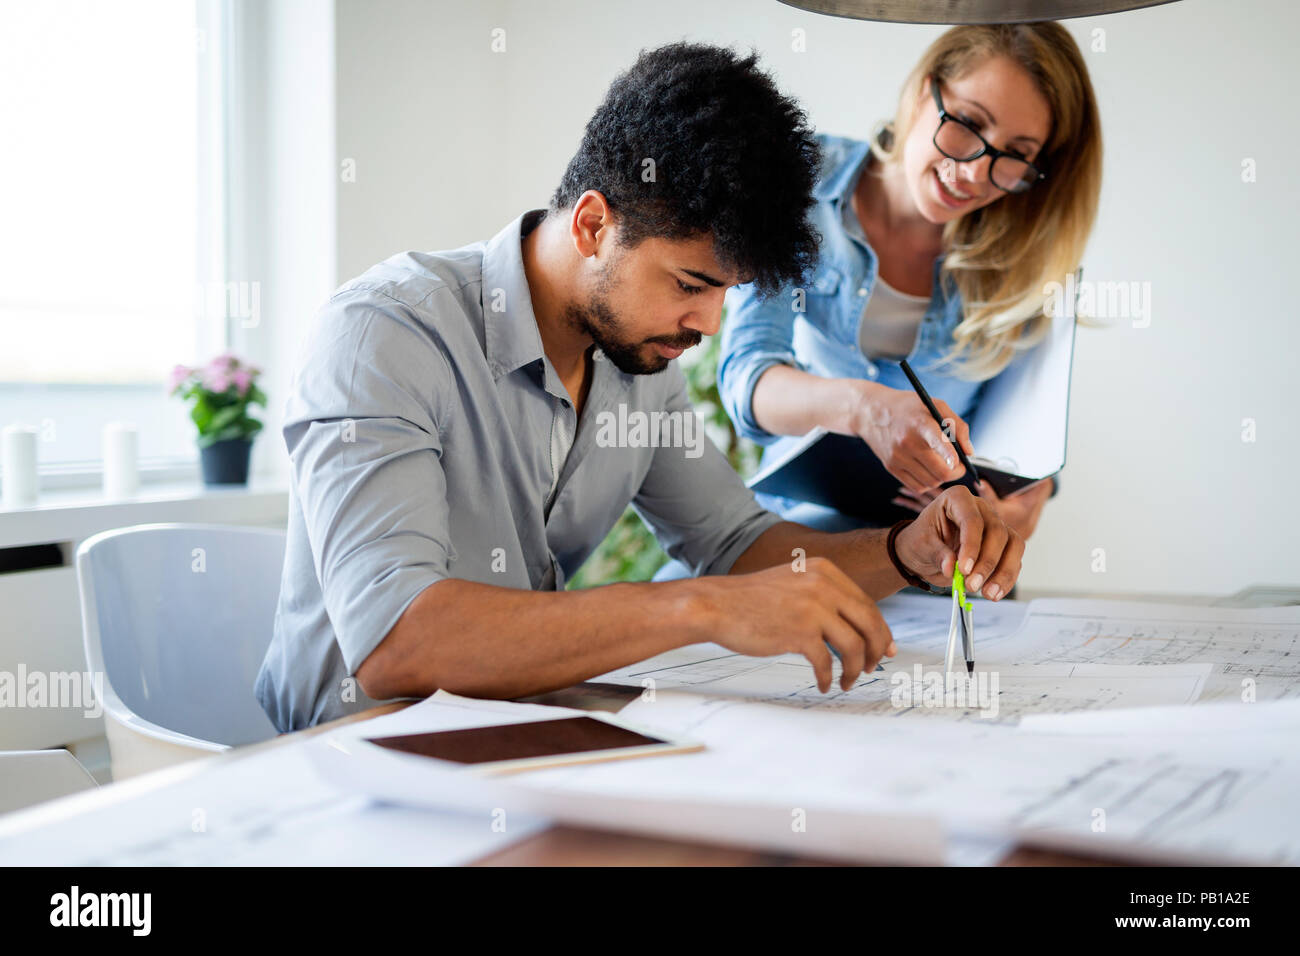 Office coworkers in business meeting discussing project plans - Stock Image